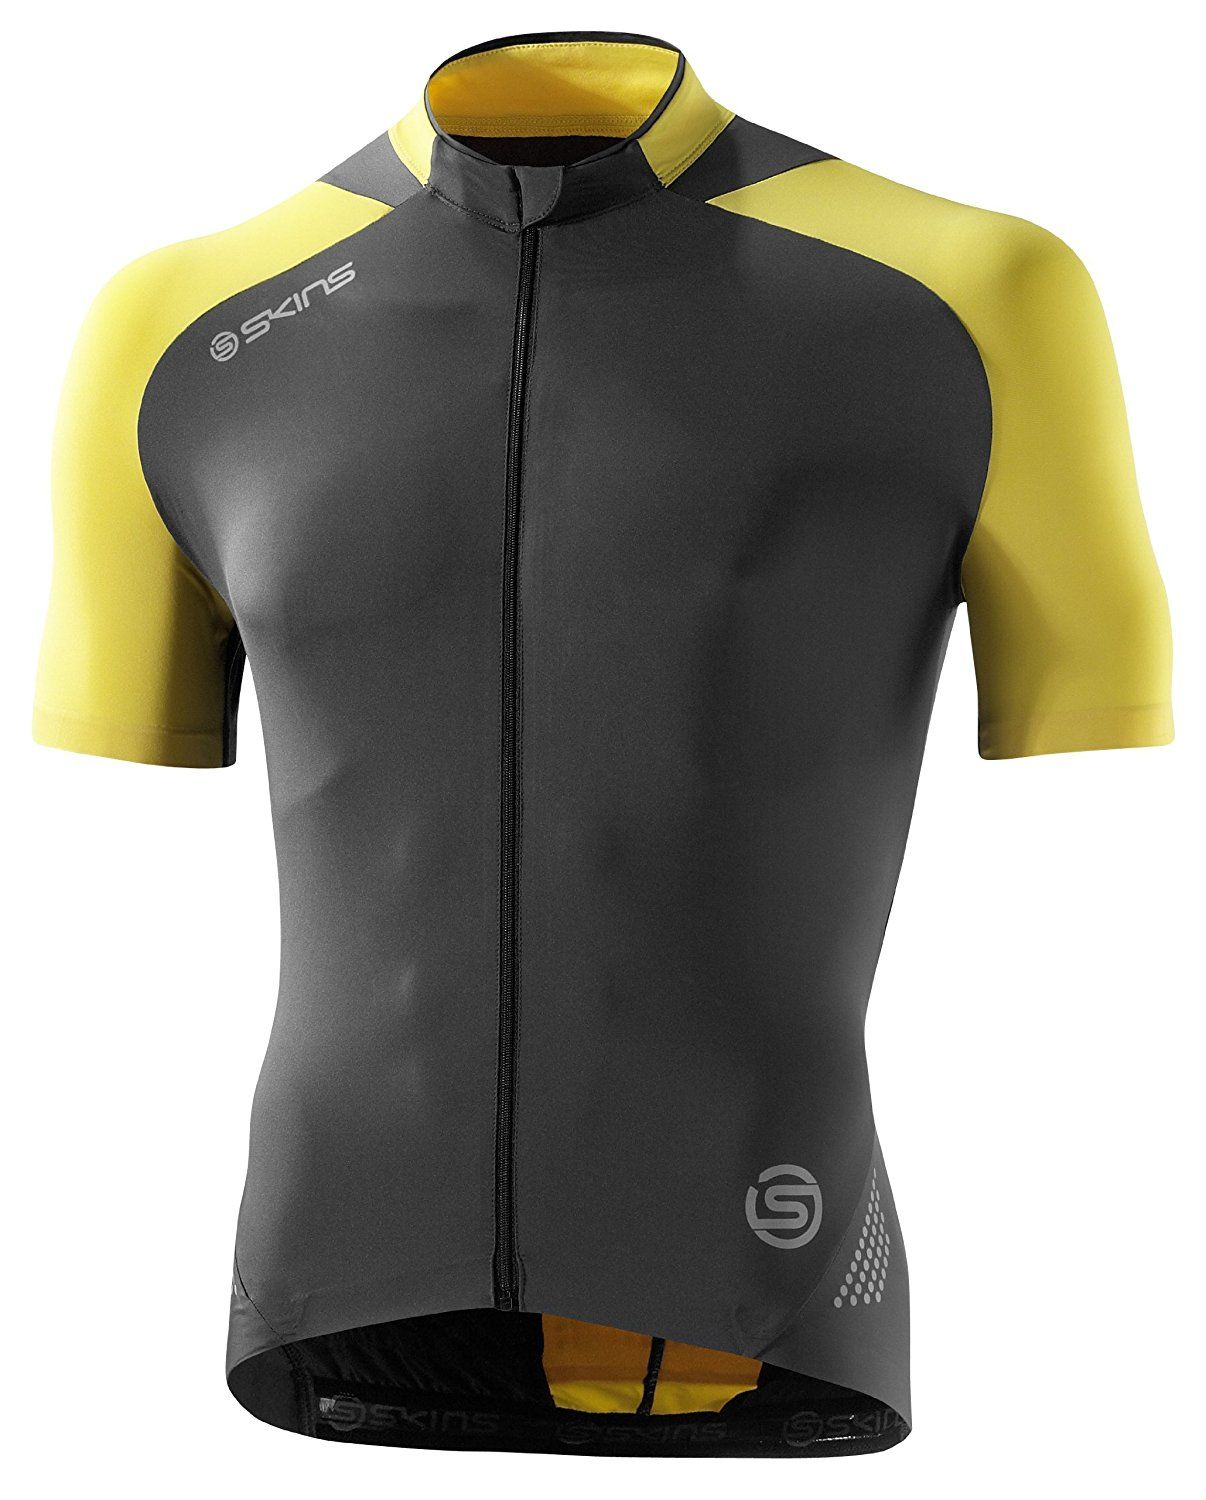 b1f5923ac Skins C400 Men s Compression Short Sleeve Cycling Jersey Small Yellow Gray  -- Want to know more